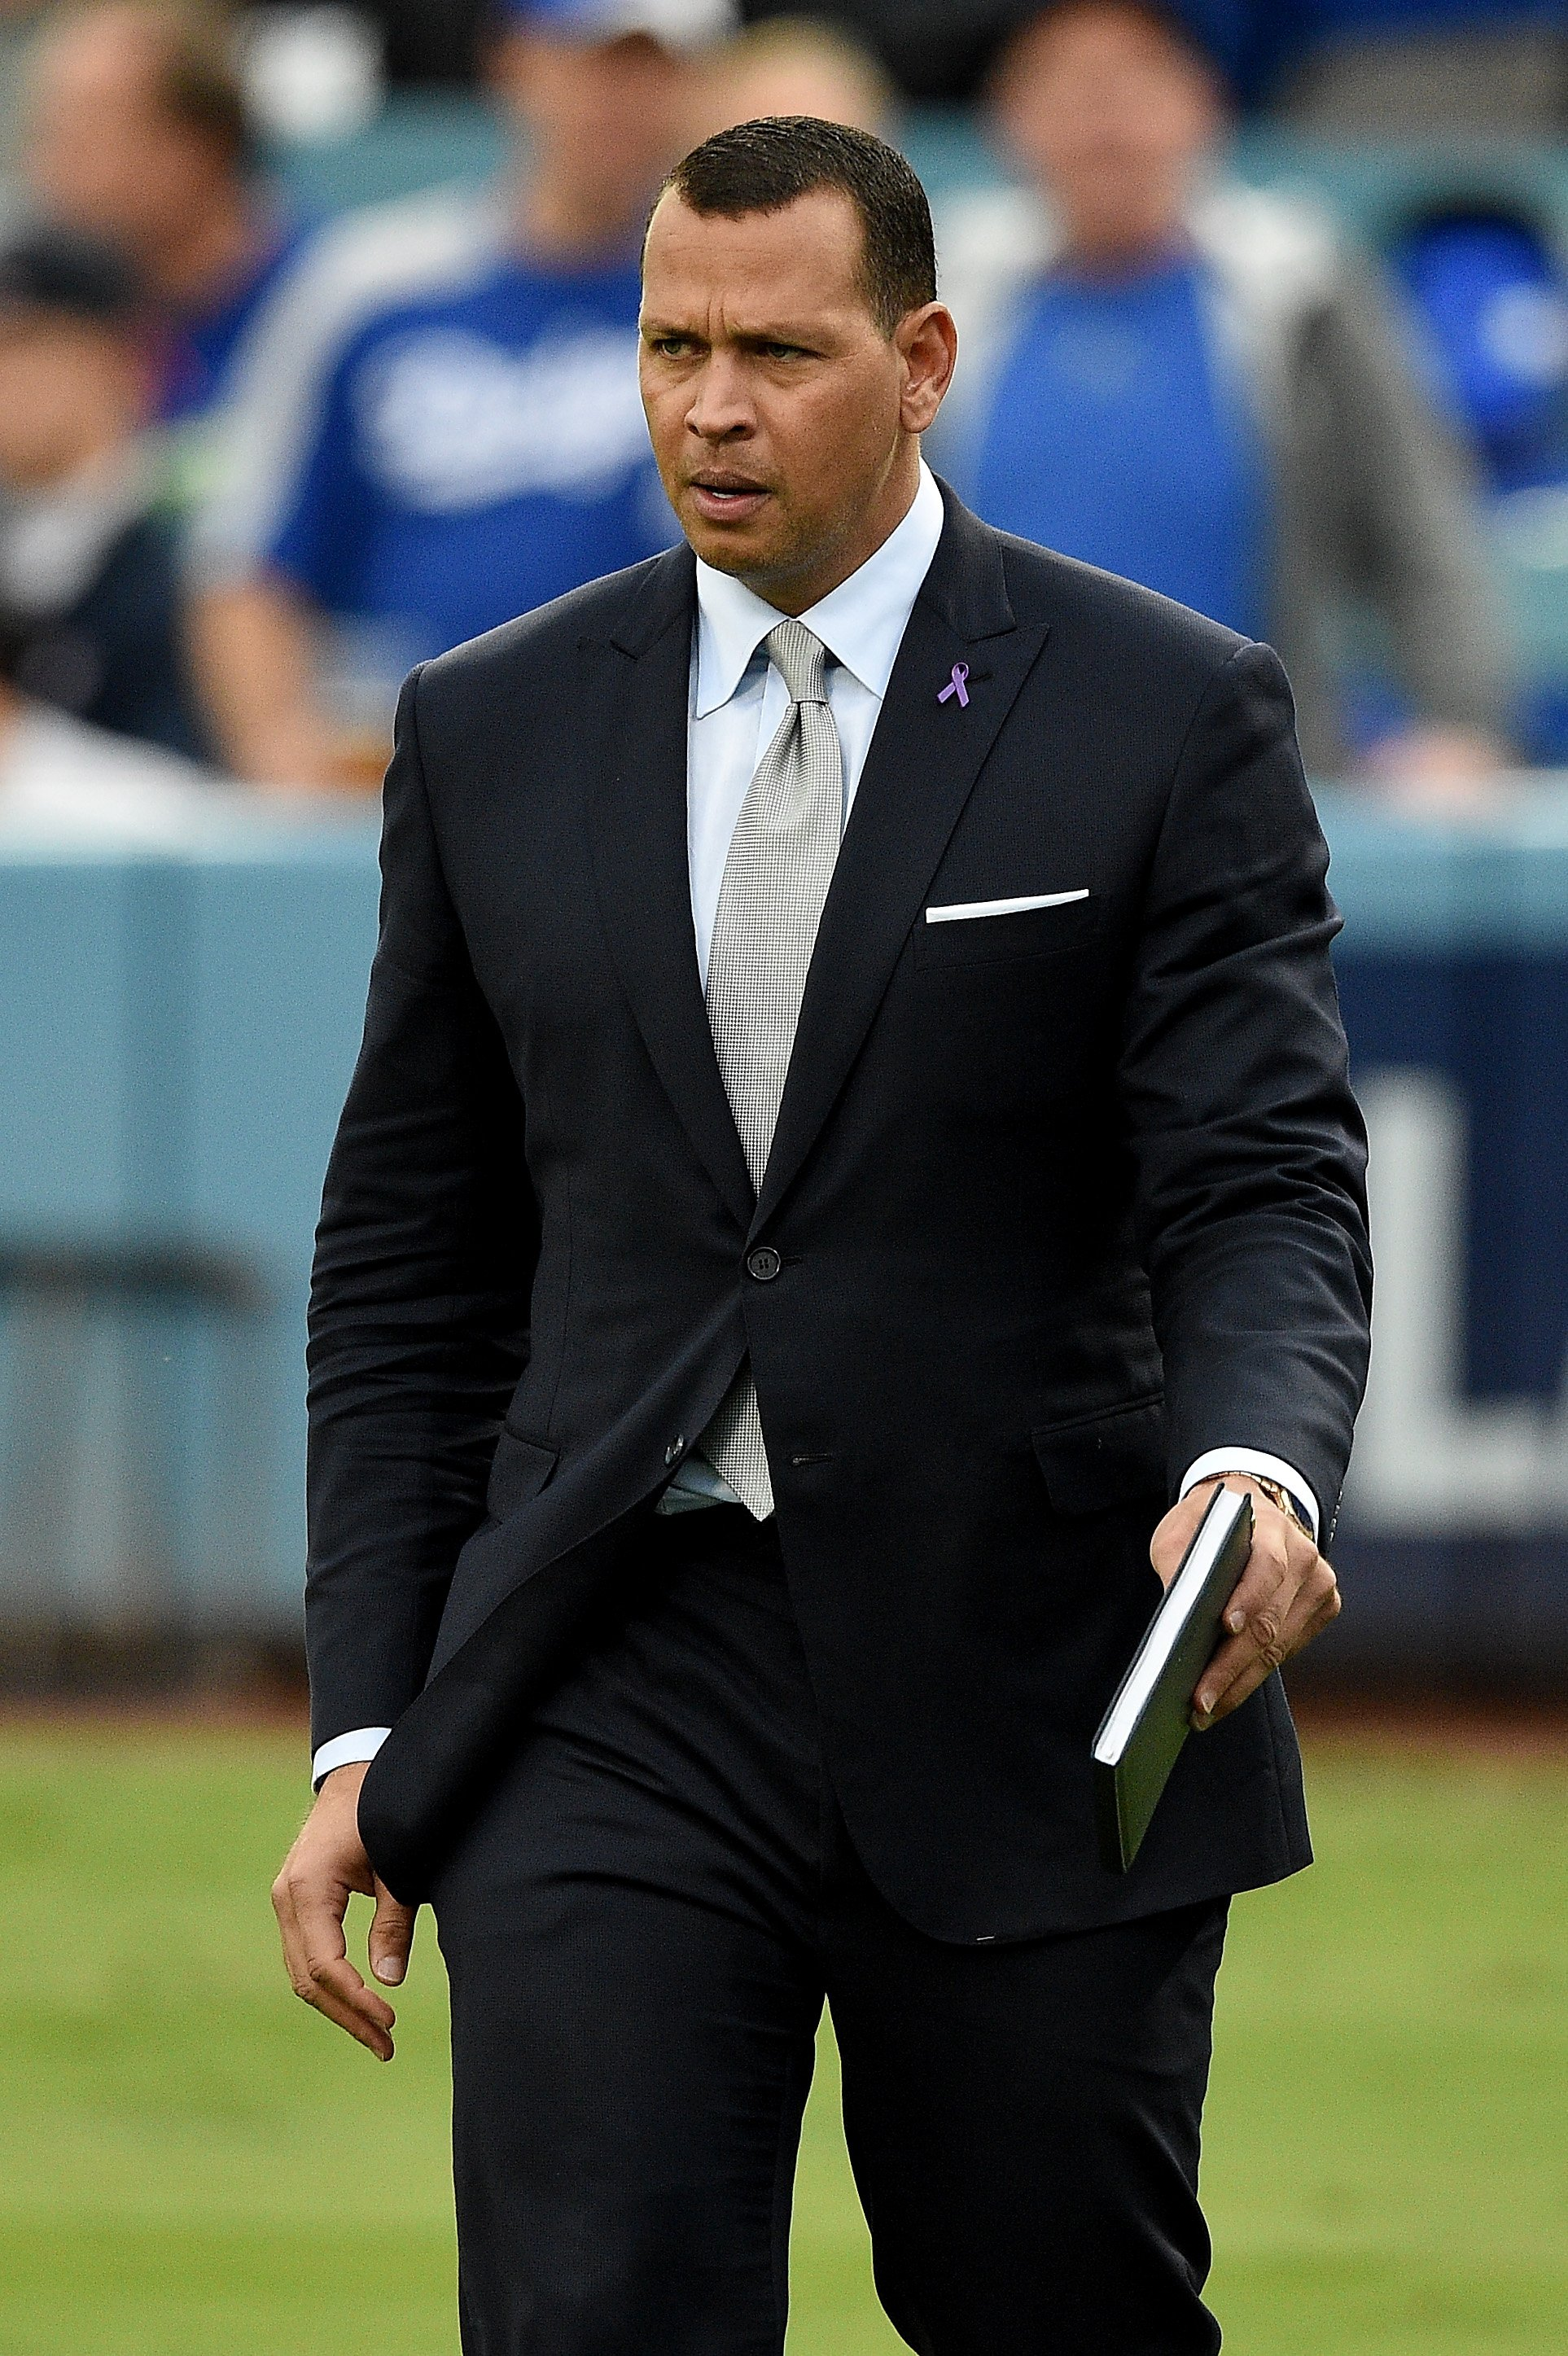 Alex Rodriguez at the Dodger Stadium on October 31, 2017, in Los Angeles, California. | Source: Getty Images.